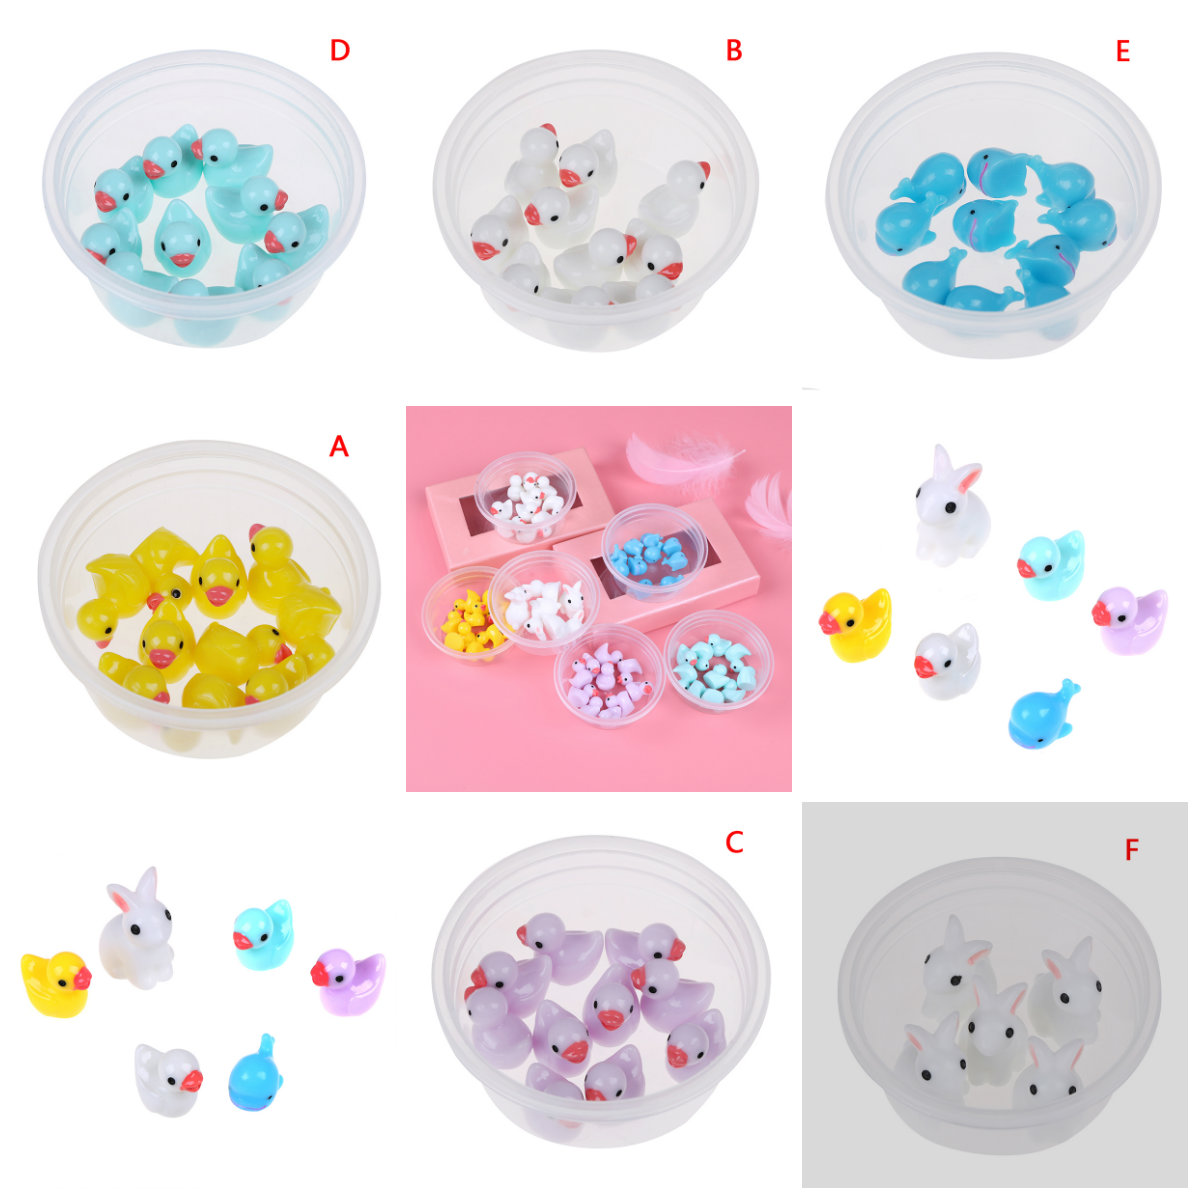 Fluffy Clear <font><b>Slime</b></font> DIY Toy Mini <font><b>Duck</b></font> Rabbit Fairy Garden Home Plants Decor Resin Crafts Miniature Dollhouse 5 Or 10pcs Per Bag image